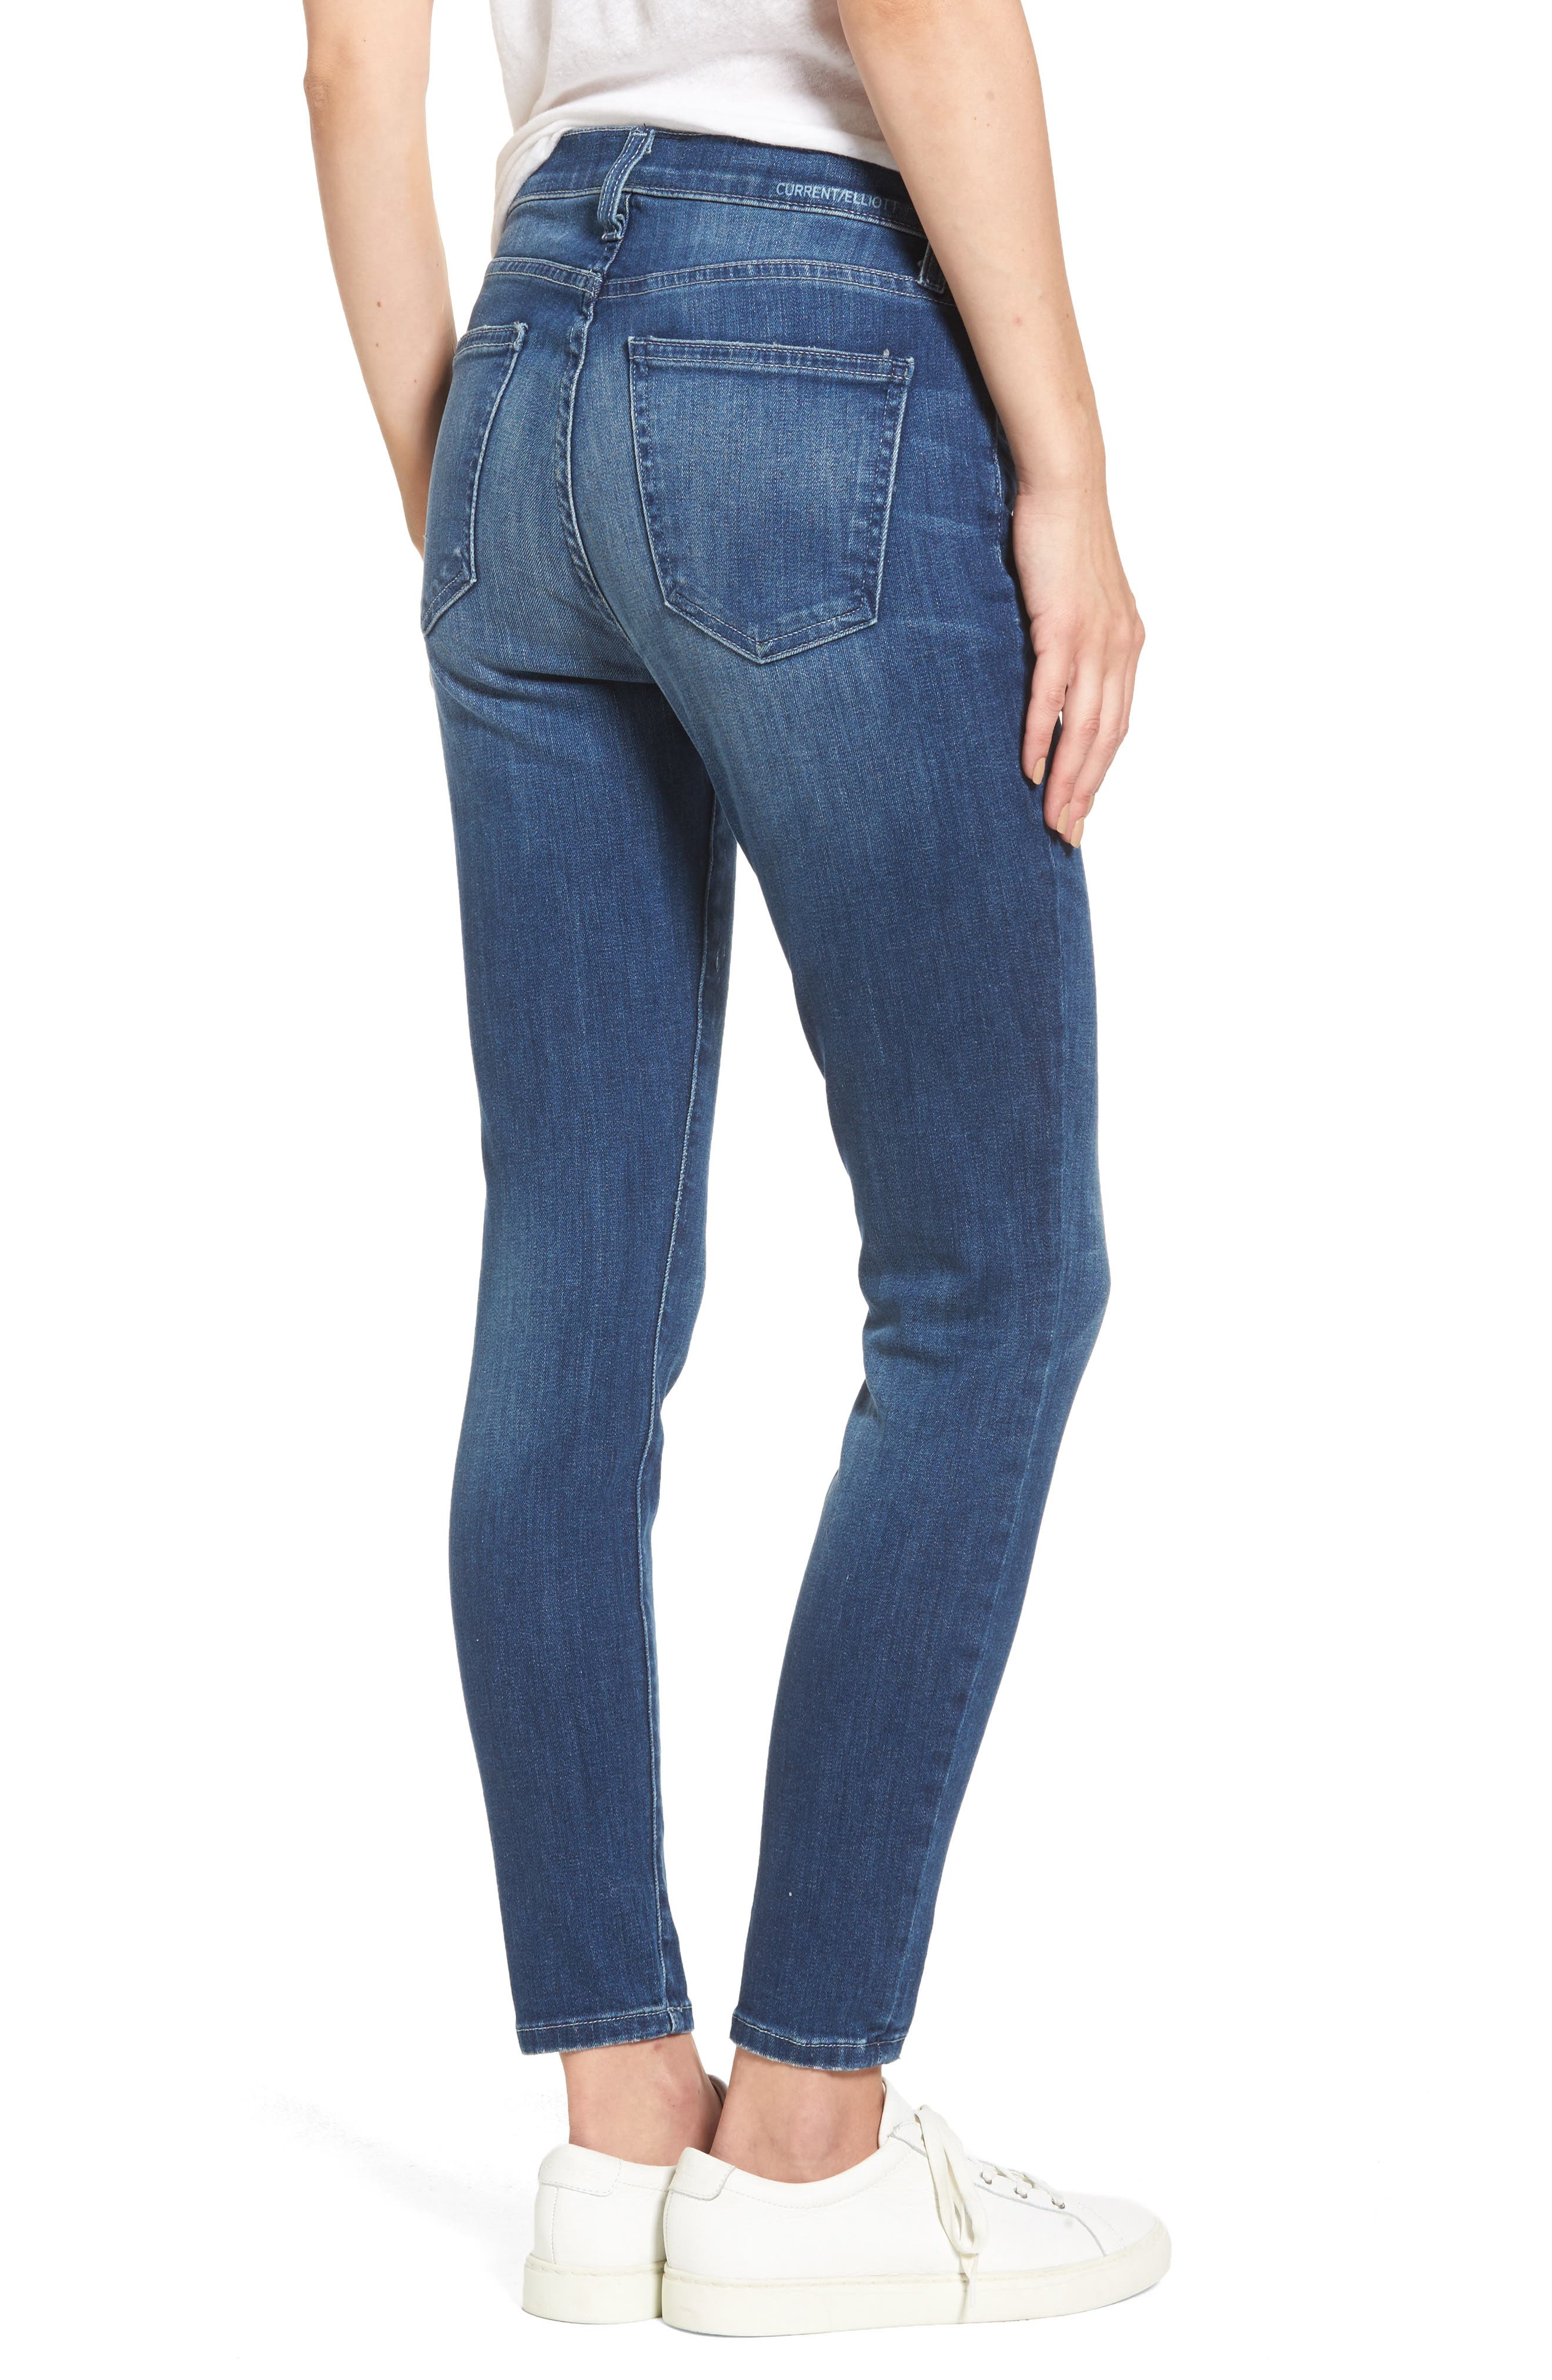 The Stiletto High Waist Skinny Jeans,                             Alternate thumbnail 2, color,                             463